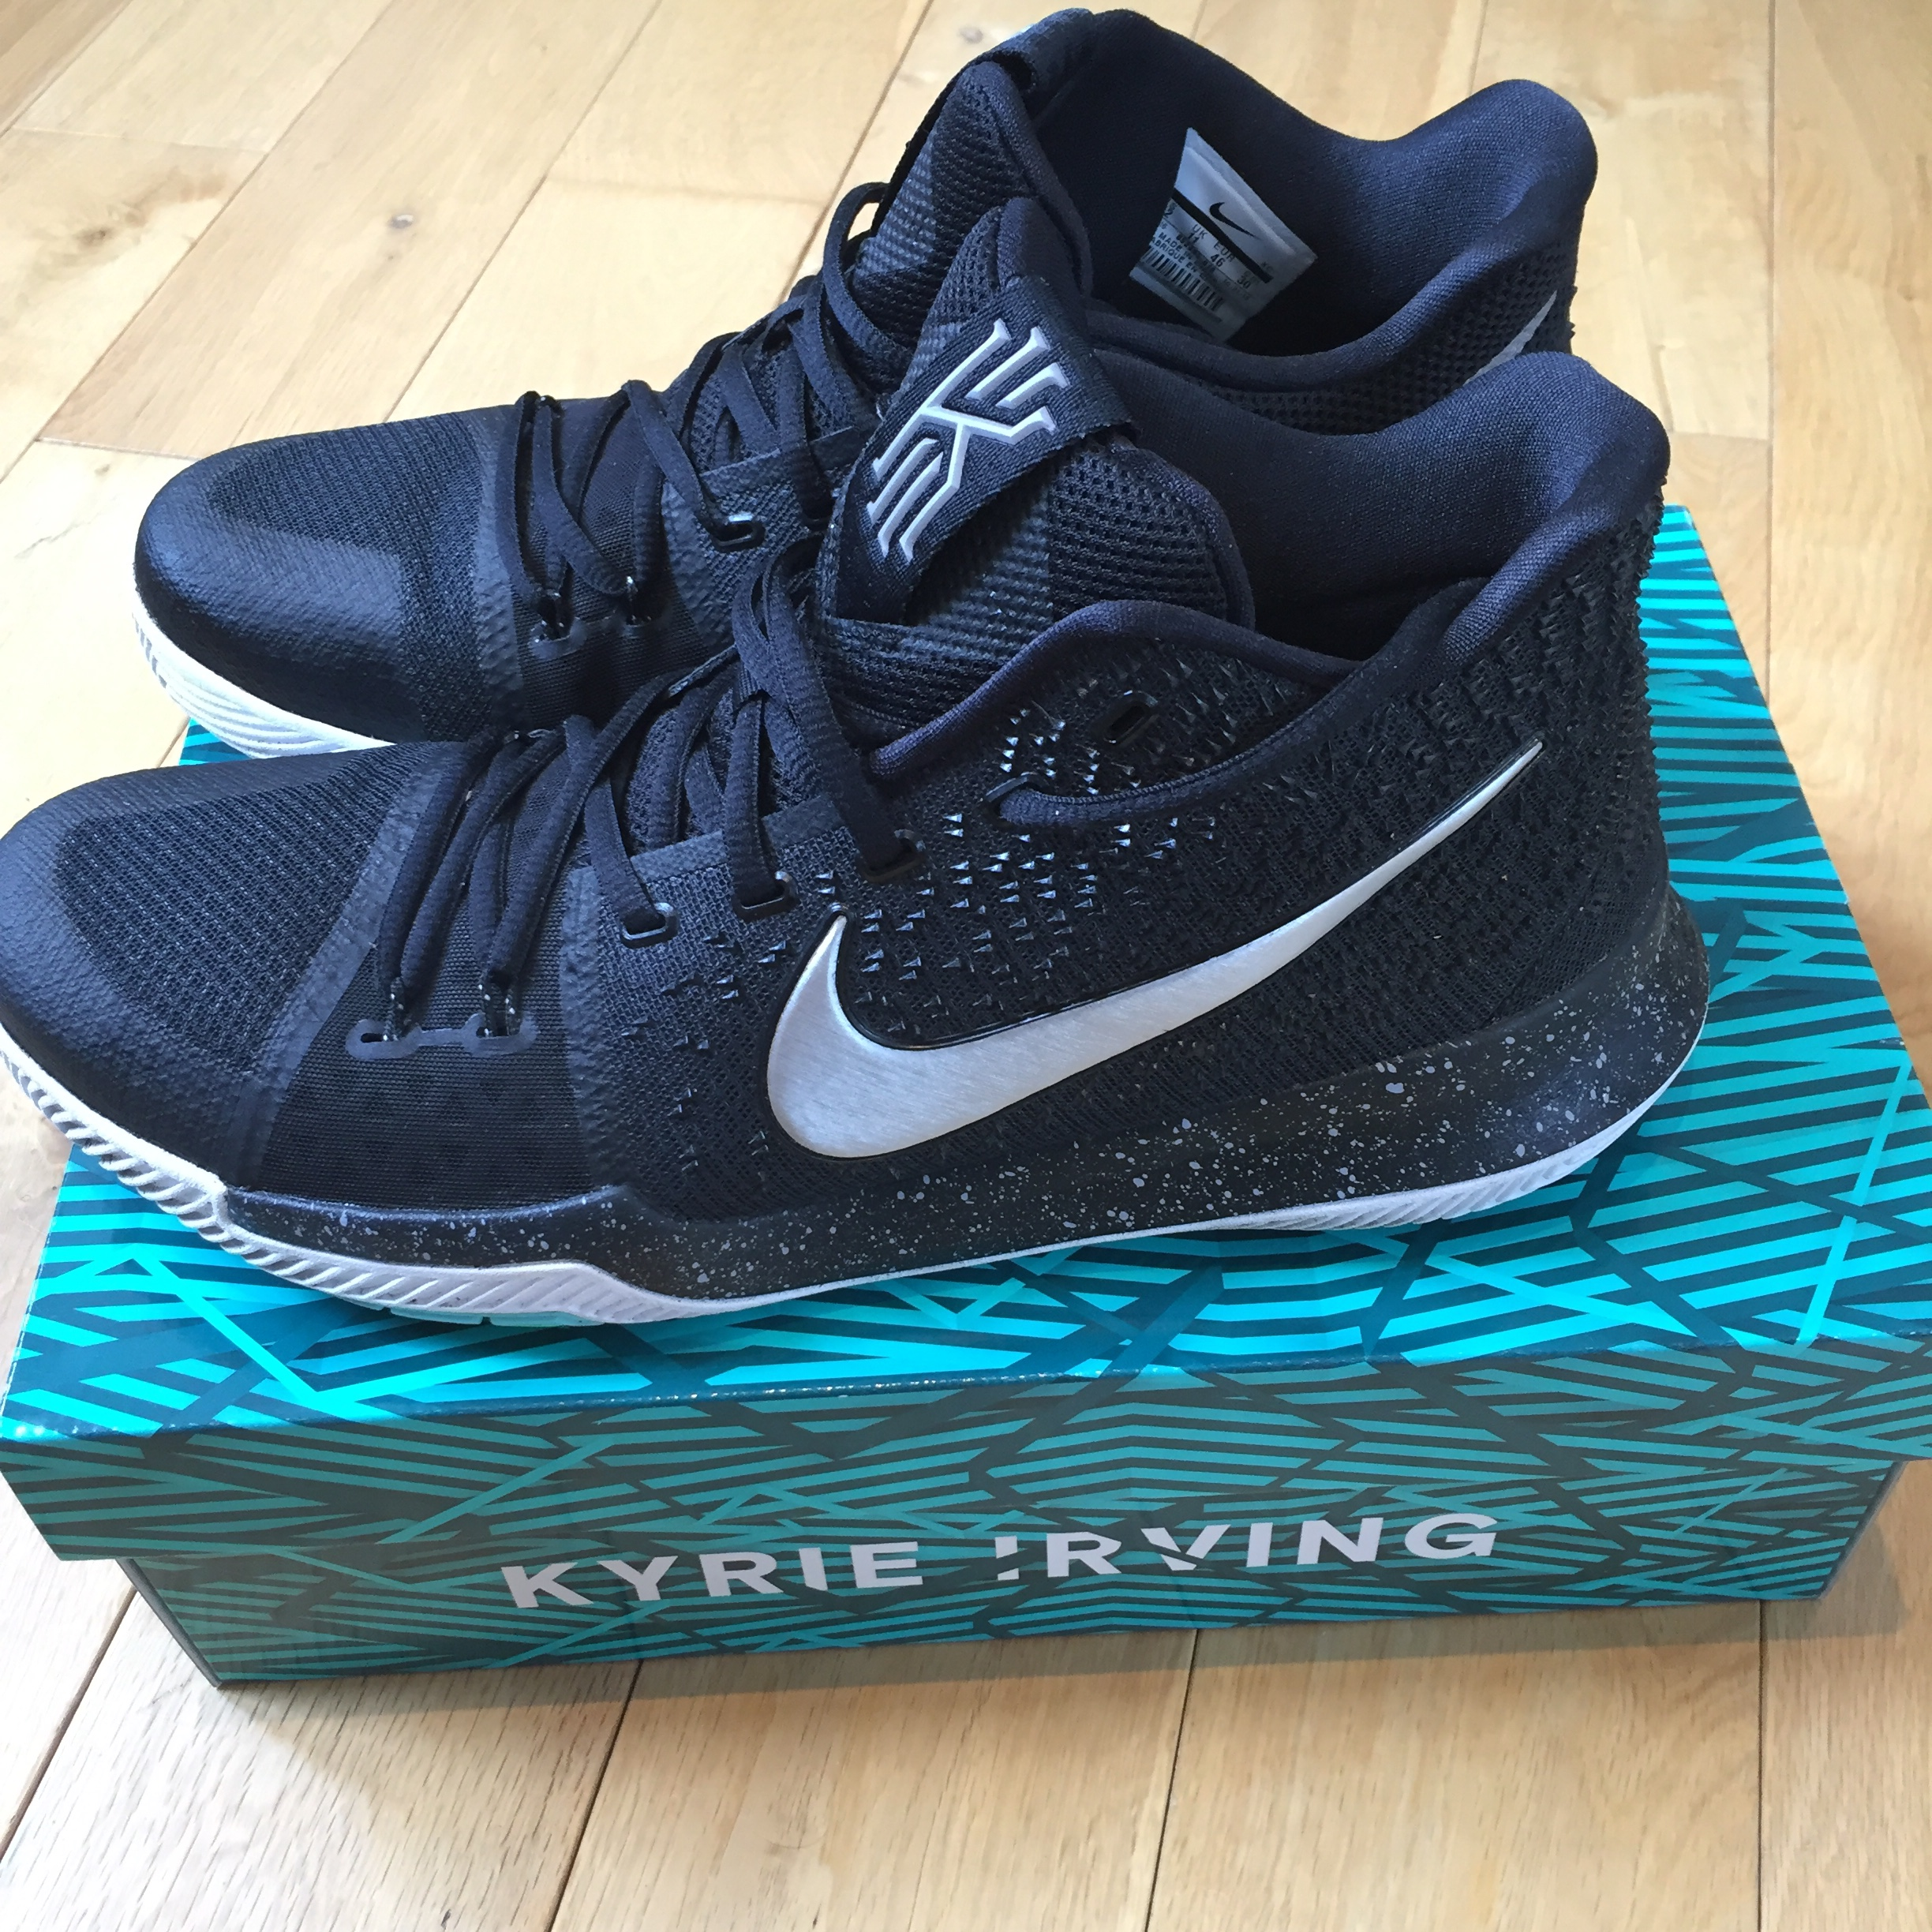 separation shoes 8d9ba 9fa6f Men's Kyrie 3 'black ice' basketball shoes... - Depop